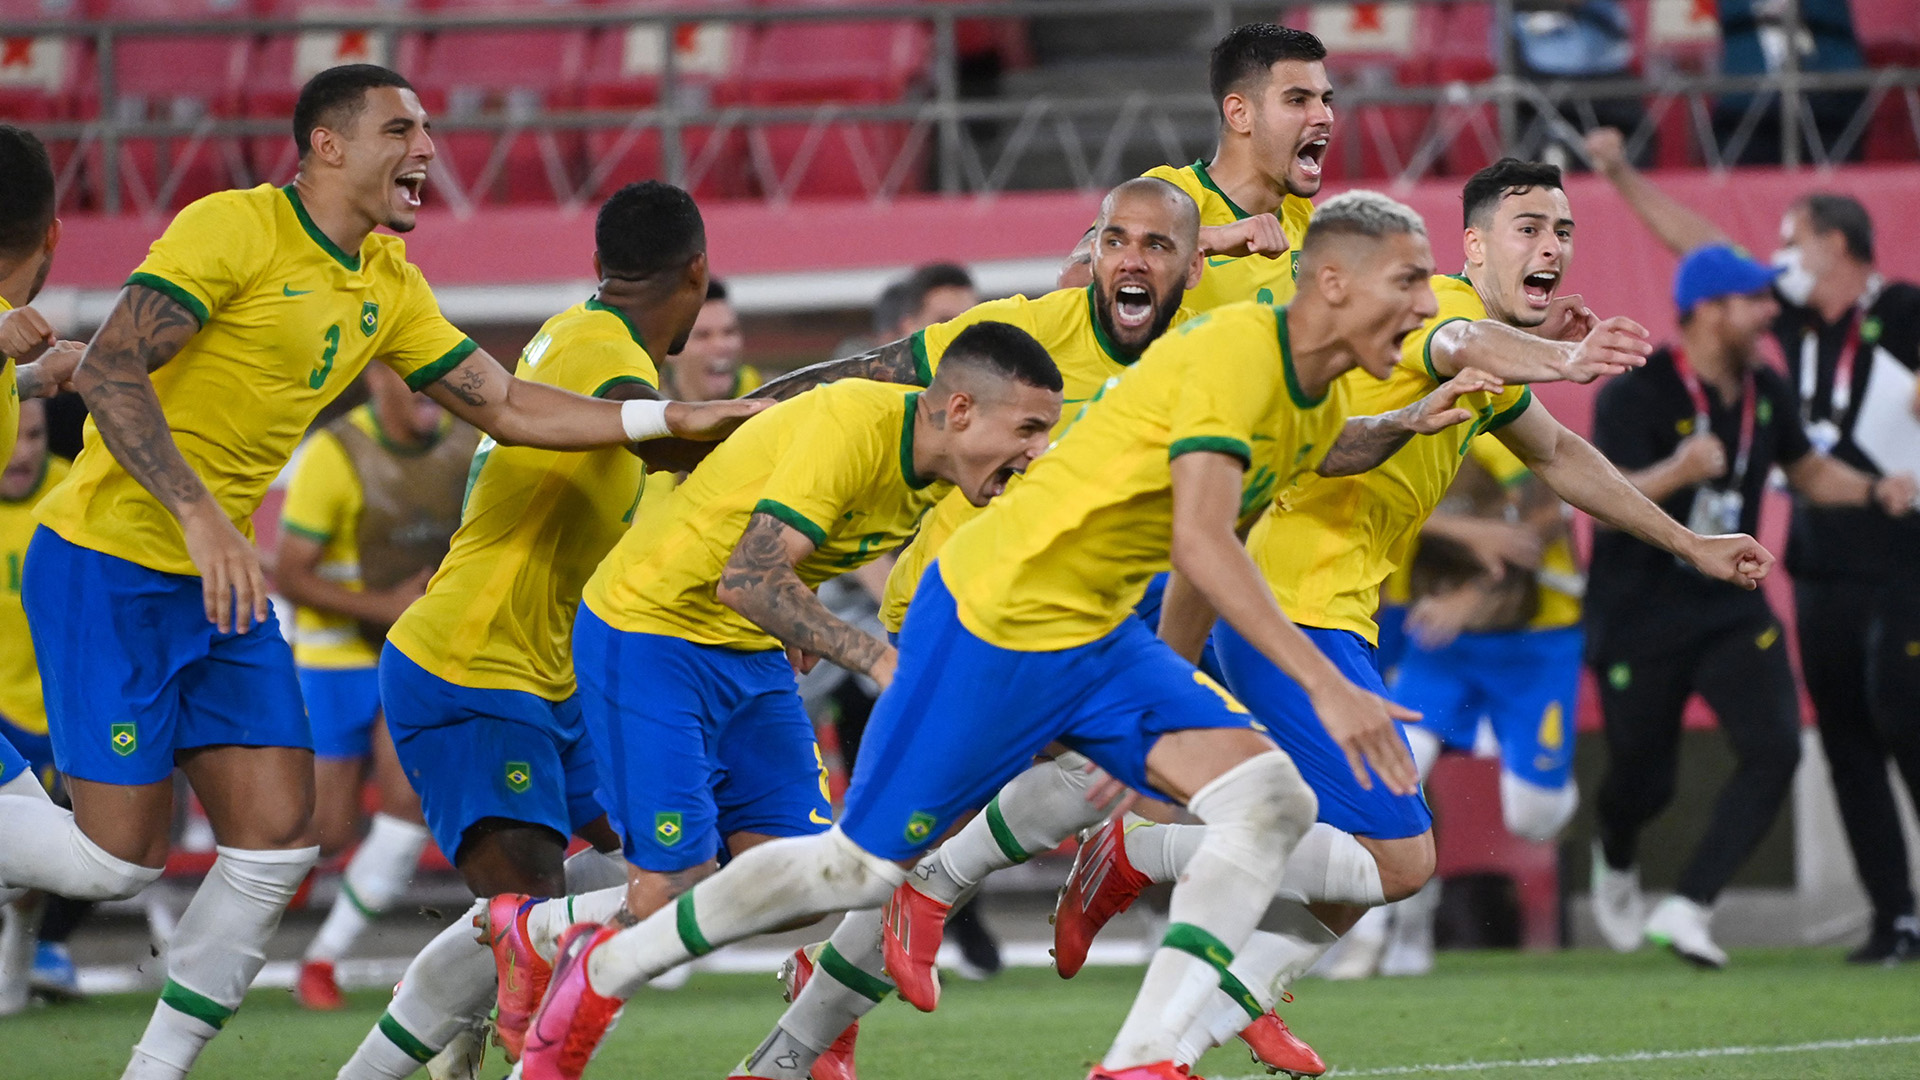 How to watch Brazil vs Spain in Olympics 2020 Final from India?